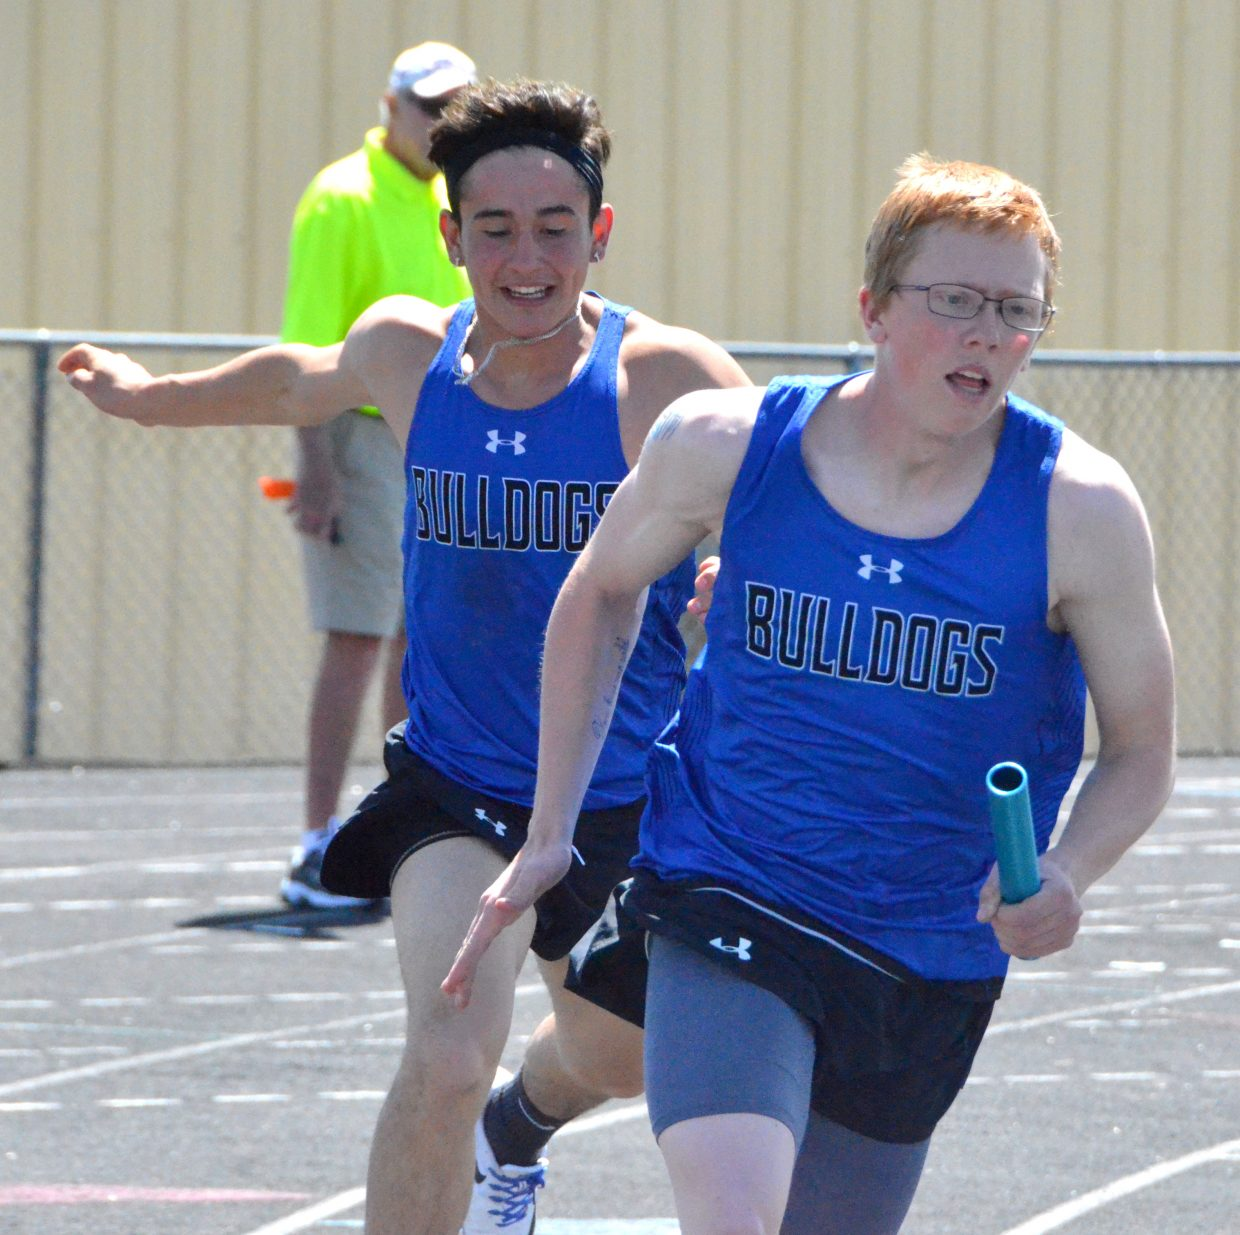 Moffat County High School's Trenton Hillewaert, front, takes off after receiving the baton from Juan Loya in the boys 4x200-meter relay Friday at the Clint Wells Invitational.